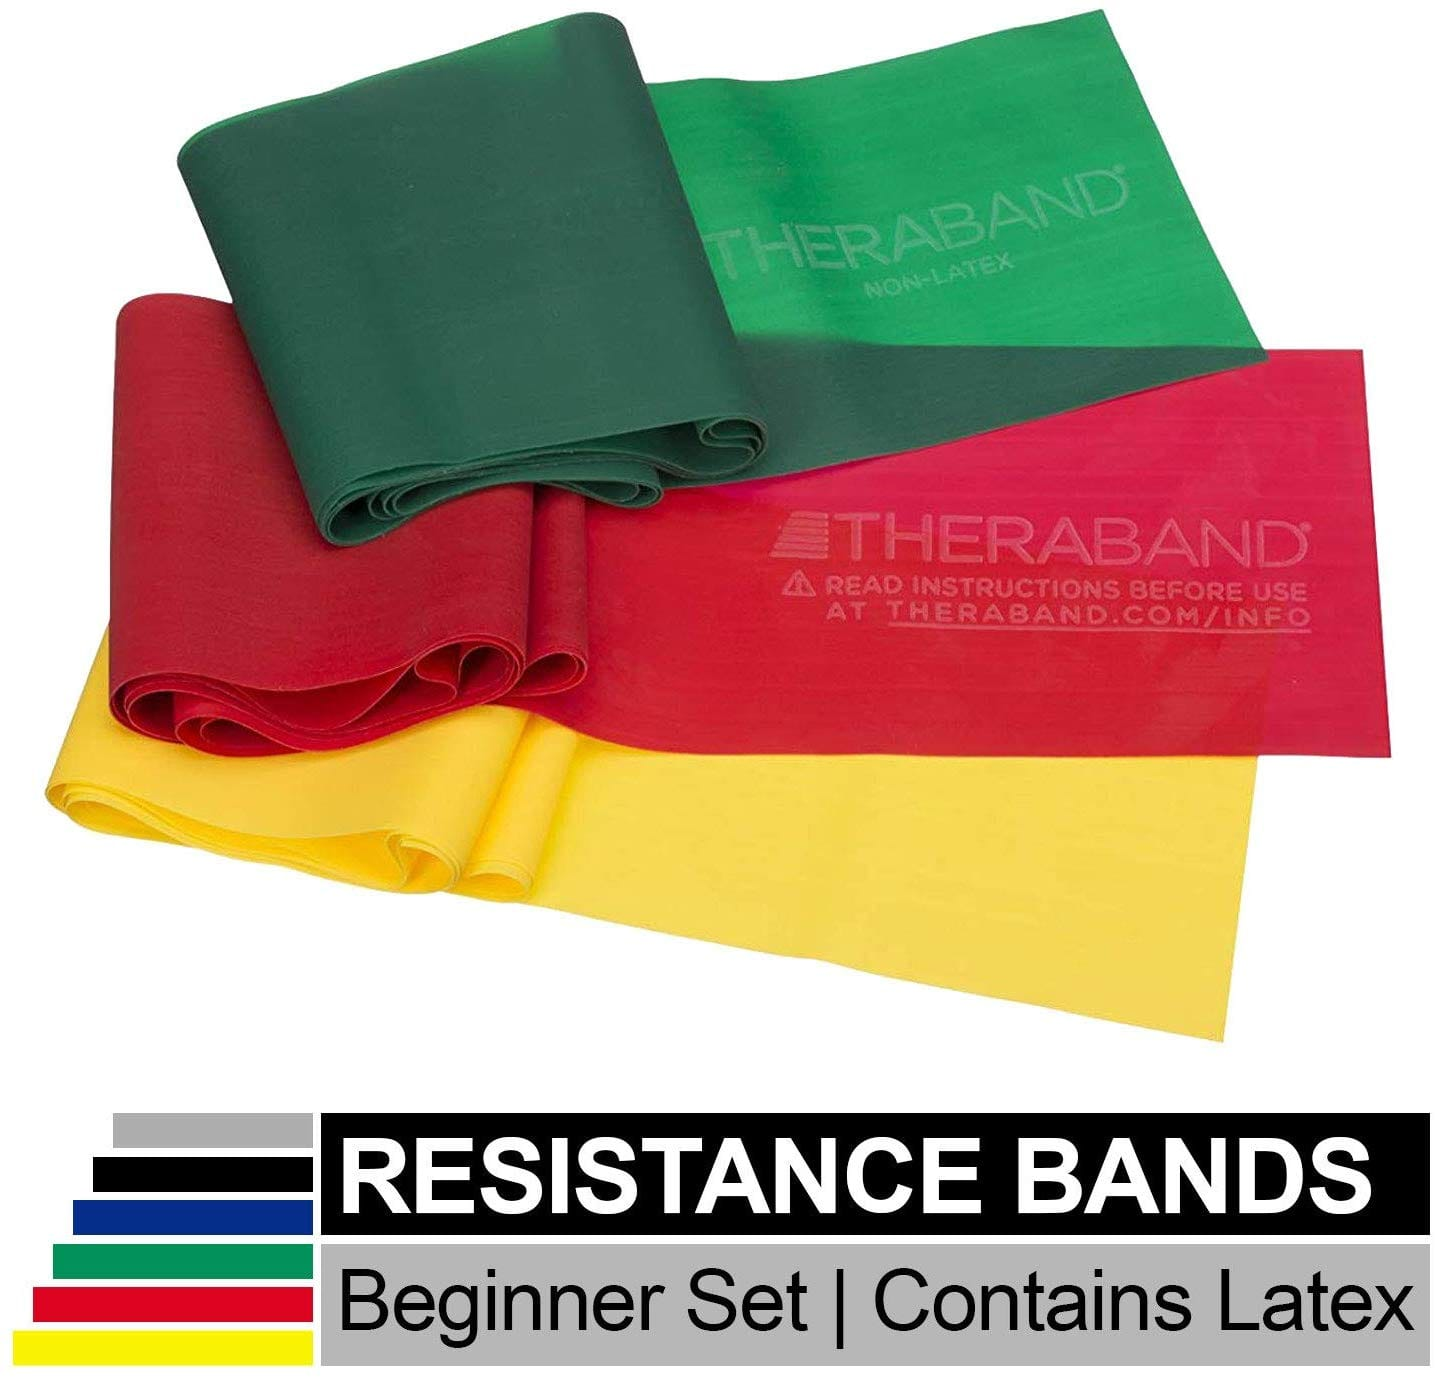 TheraBand Resistance Band Set (Professional Elastic Bands for Upper & Lower Body & Core Exercise) $8.38 & More - Amazon